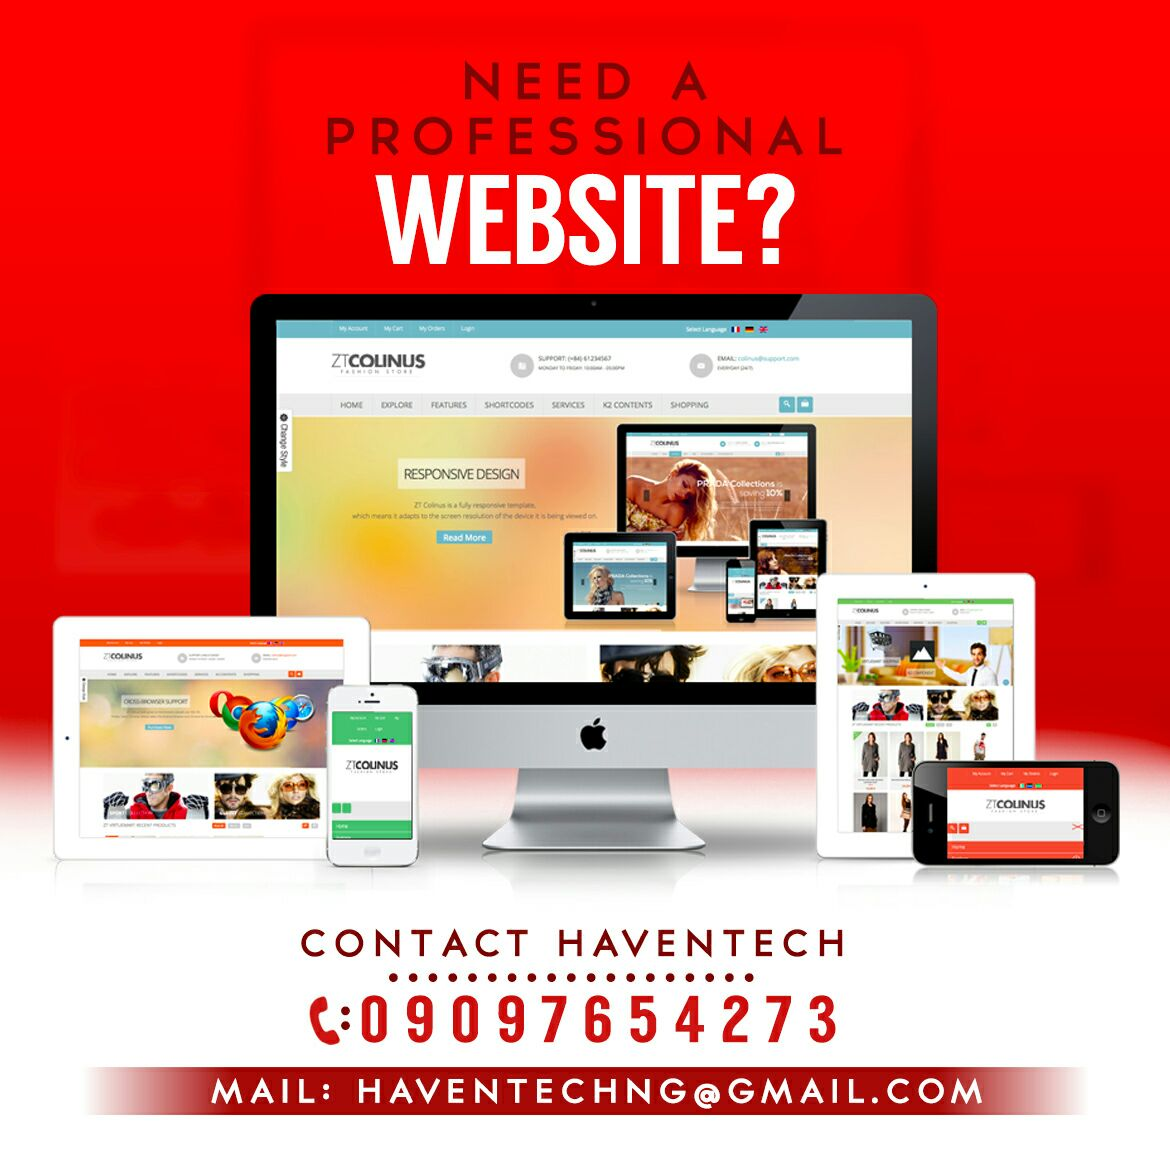 Get Your Own Blog Website For As Low As 30 000 Naira